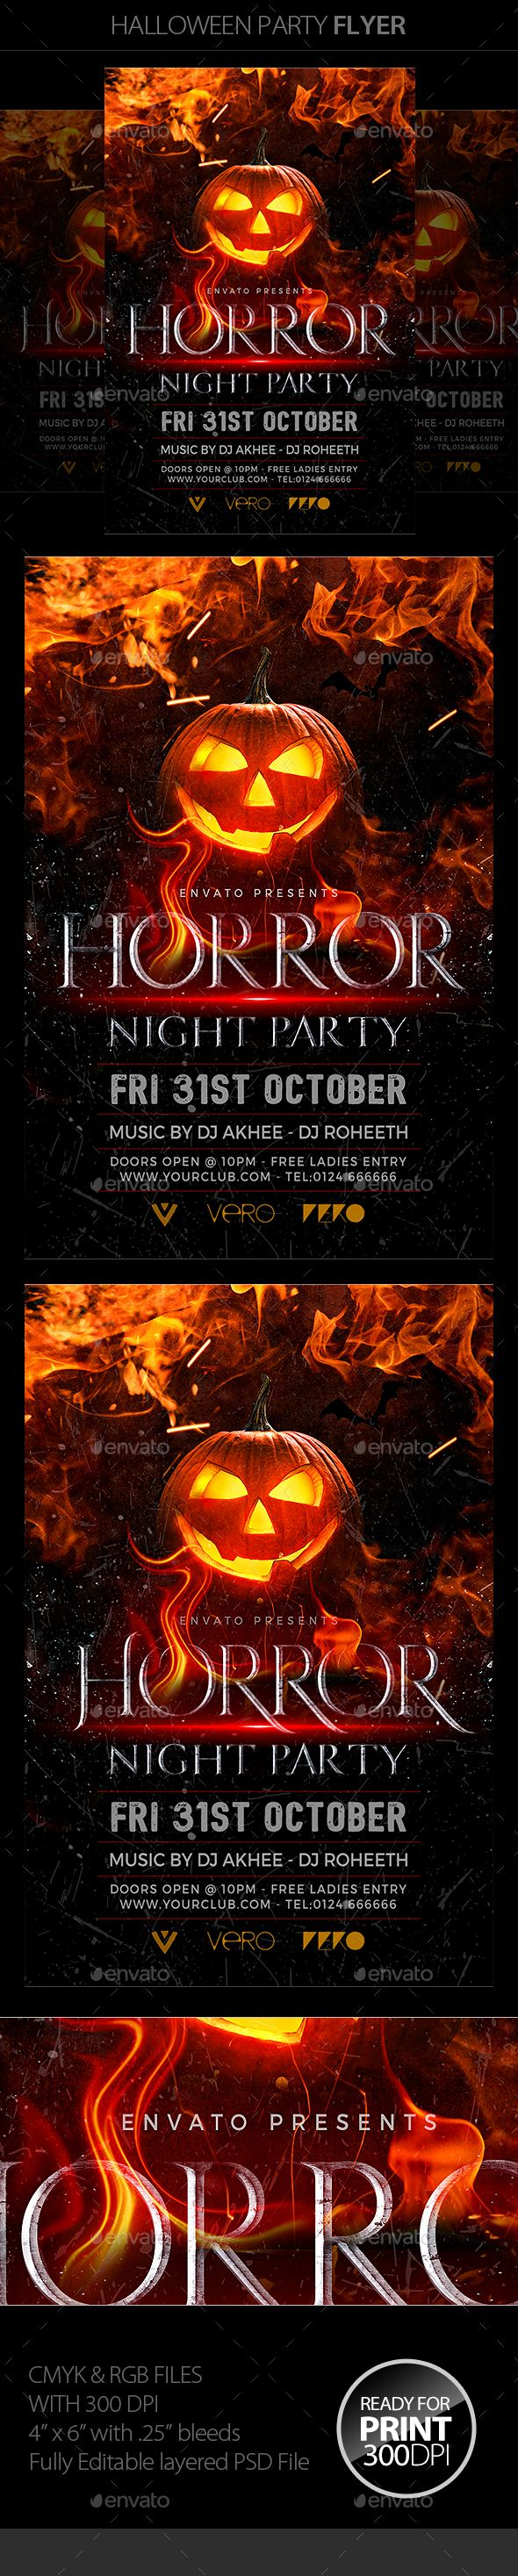 halloween party flyer template psd - Halloween Music For Parties